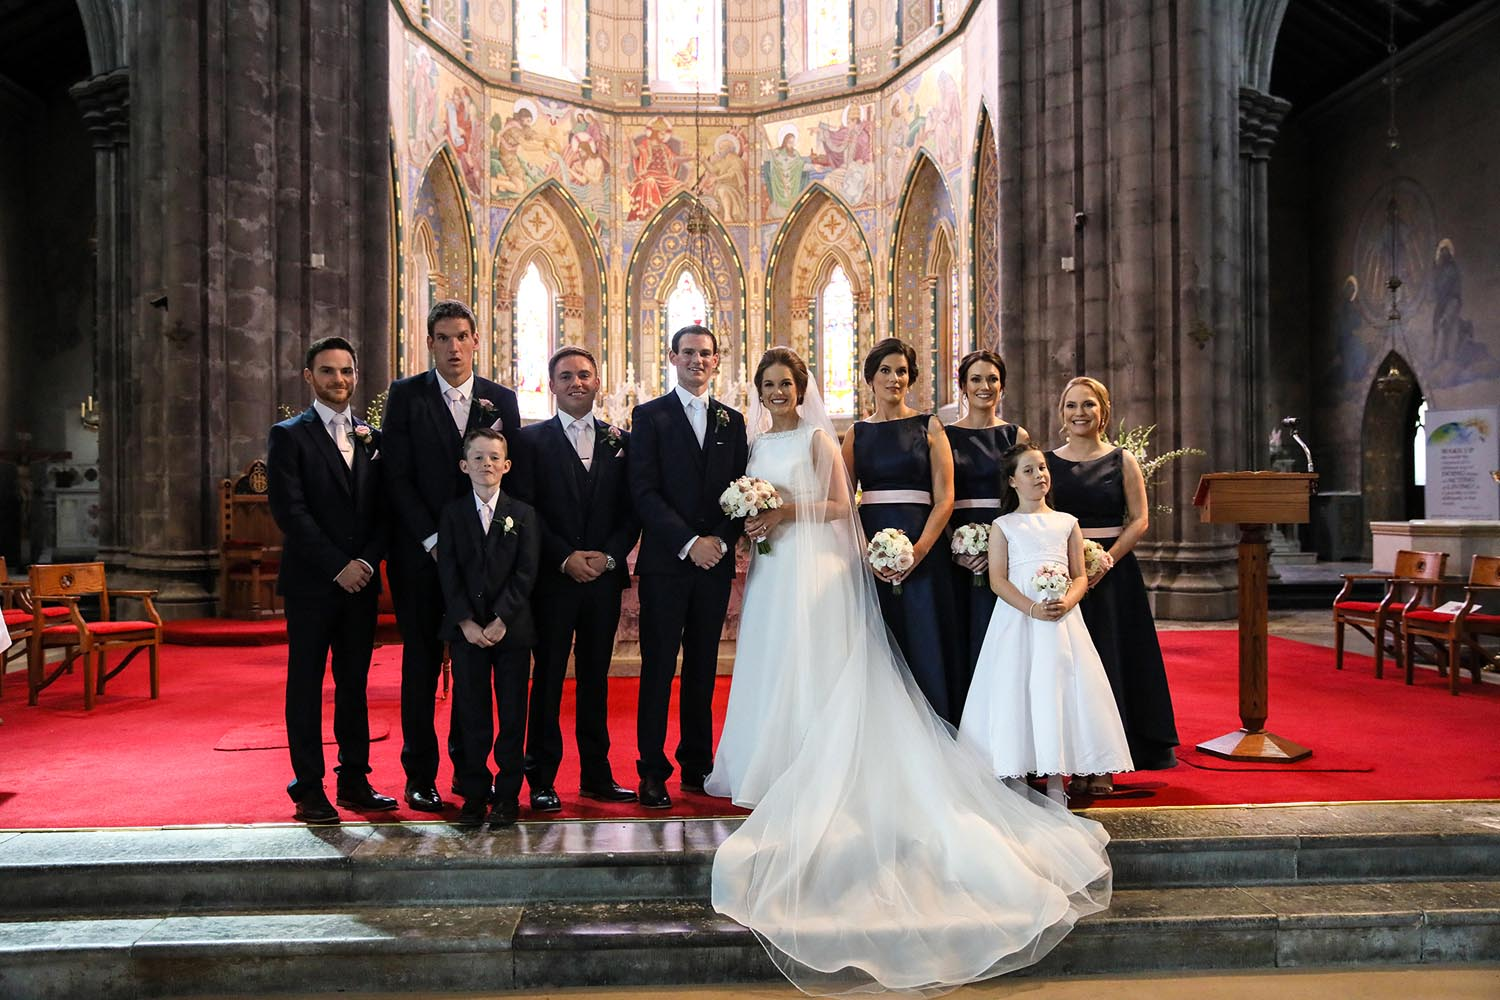 Wedding party standing on the church alter for photographs